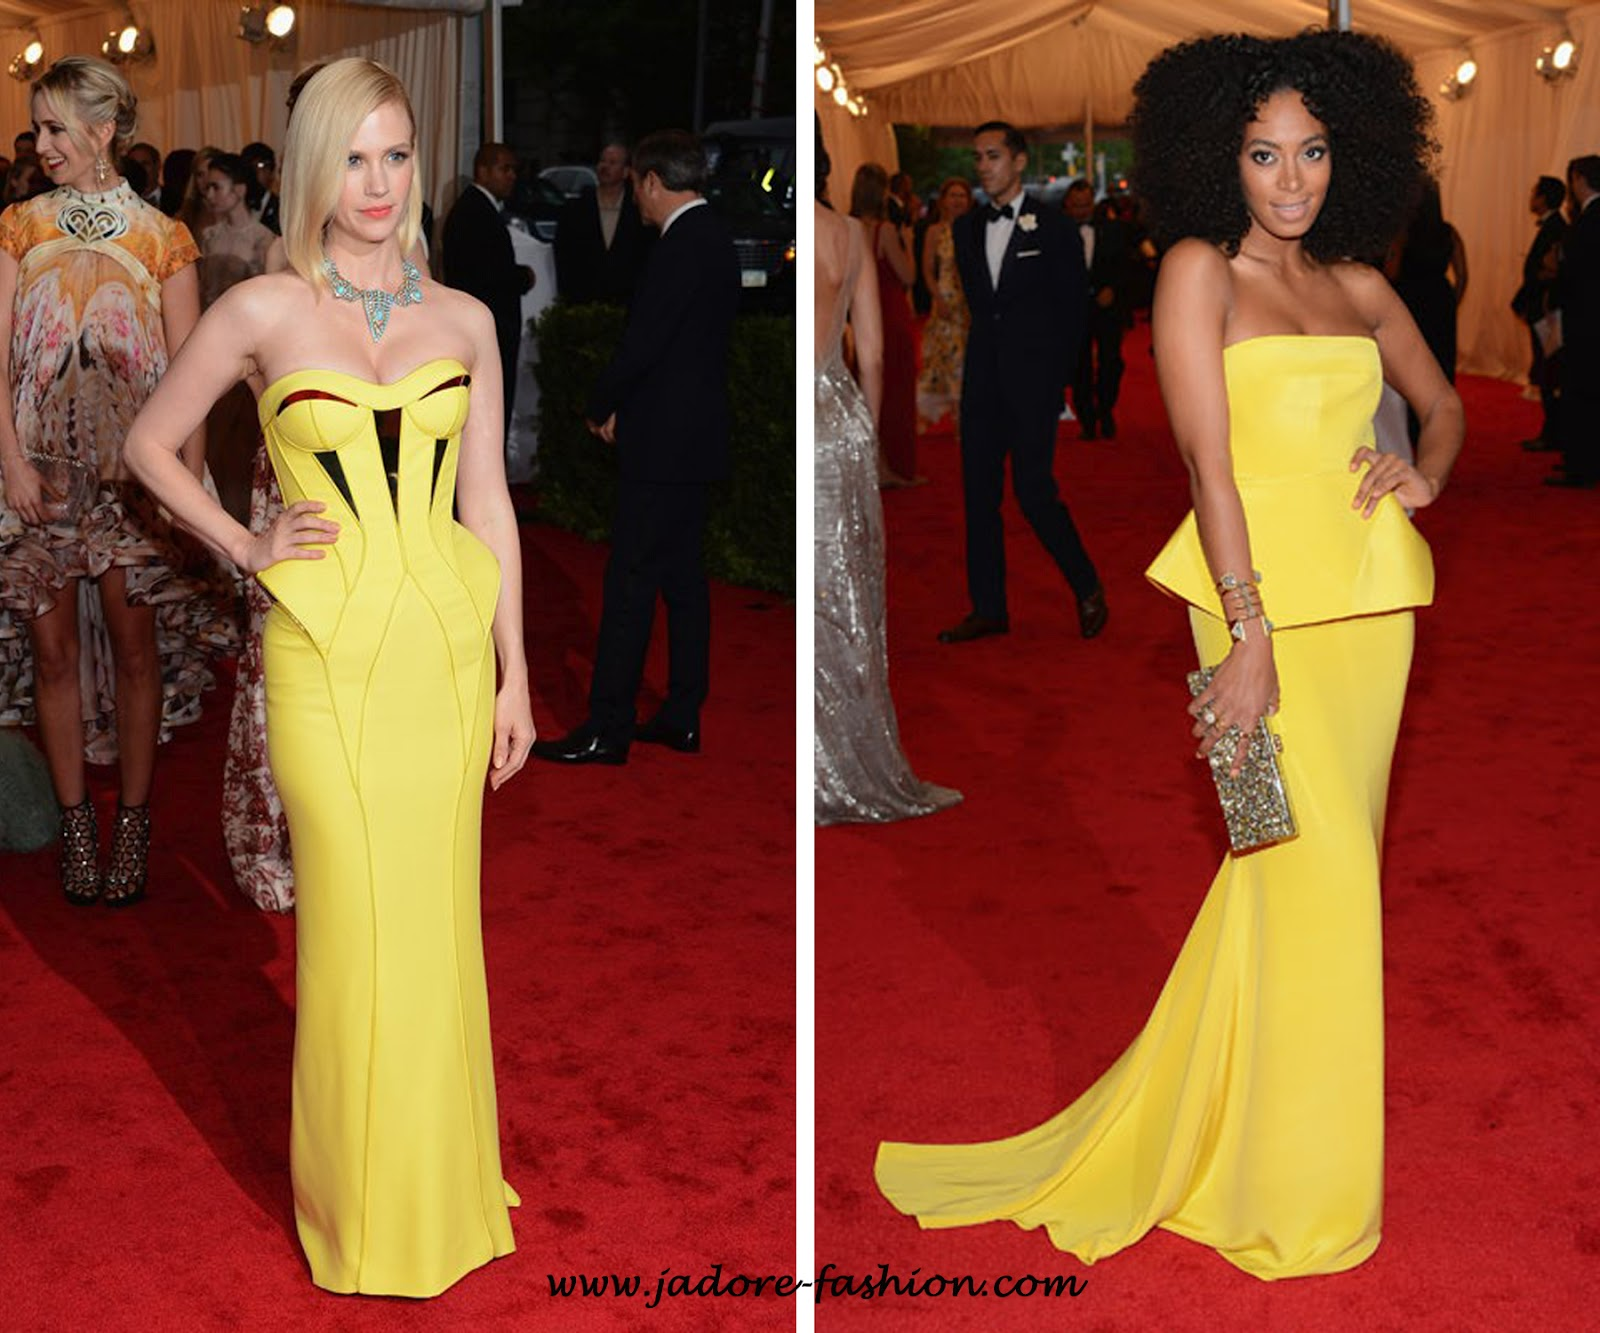 http://2.bp.blogspot.com/-Wy_TEP67BIg/T6iDxuEpgLI/AAAAAAAAFBU/yxpAT3OC7po/s1600/MetGala+Solange+and+January+Jones.jpg